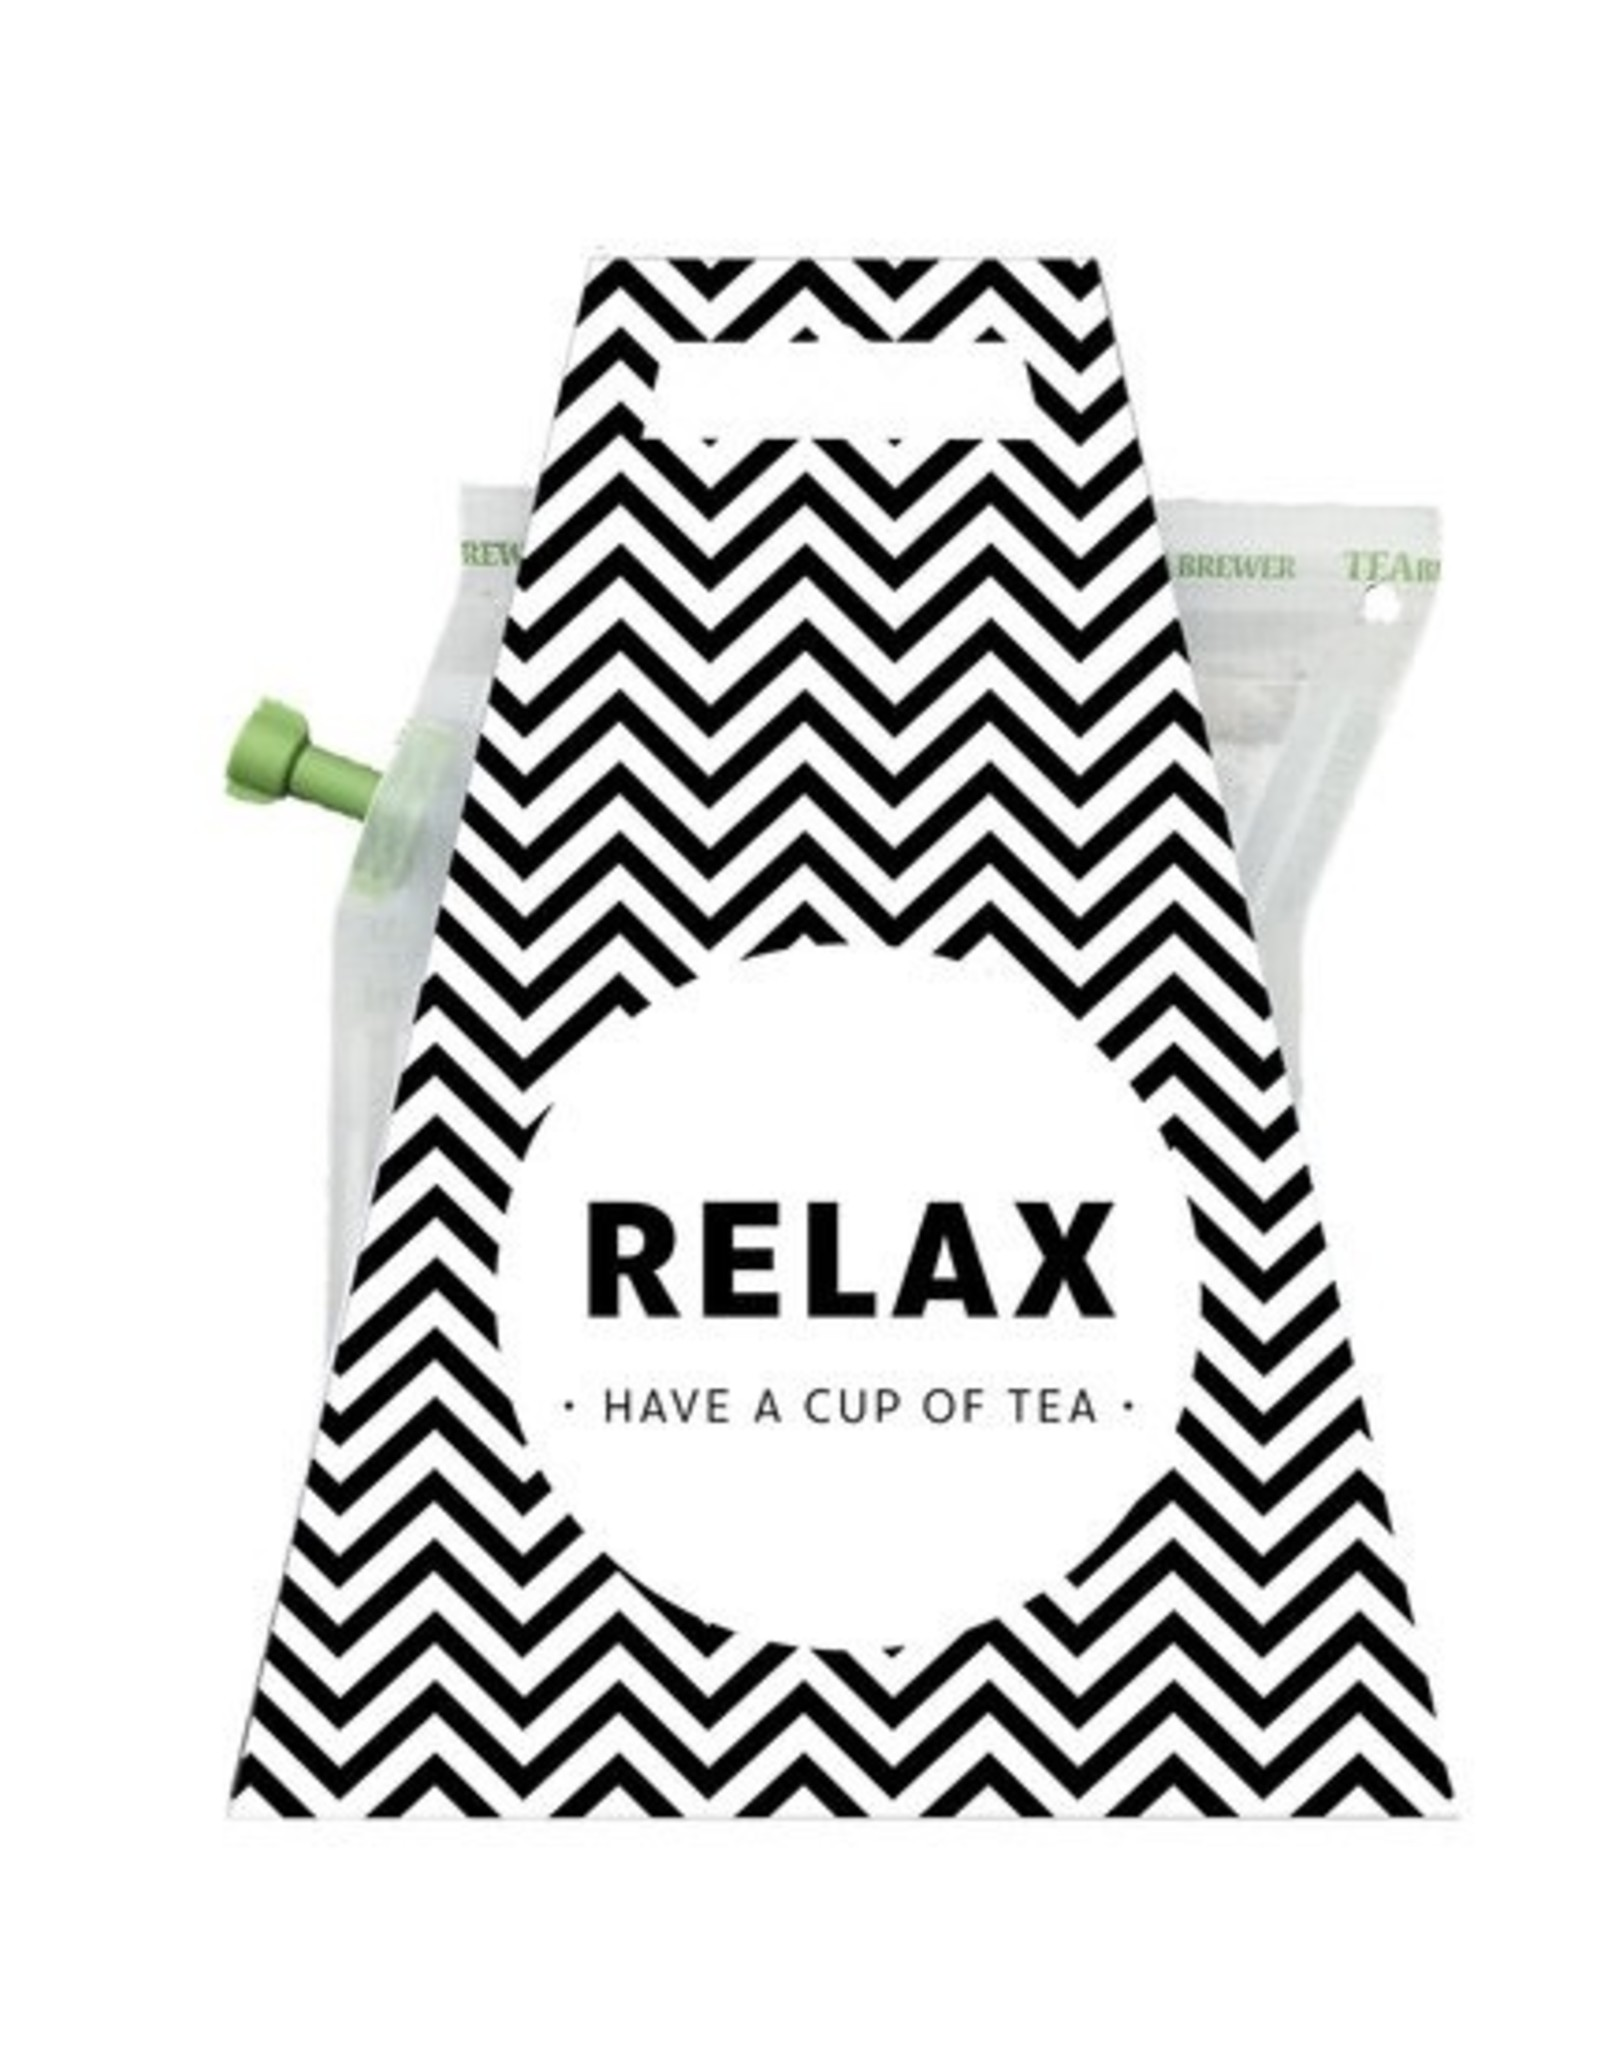 LIV 'N TASTE Relax Have a Cup of Tea - TeaBrewer Gift